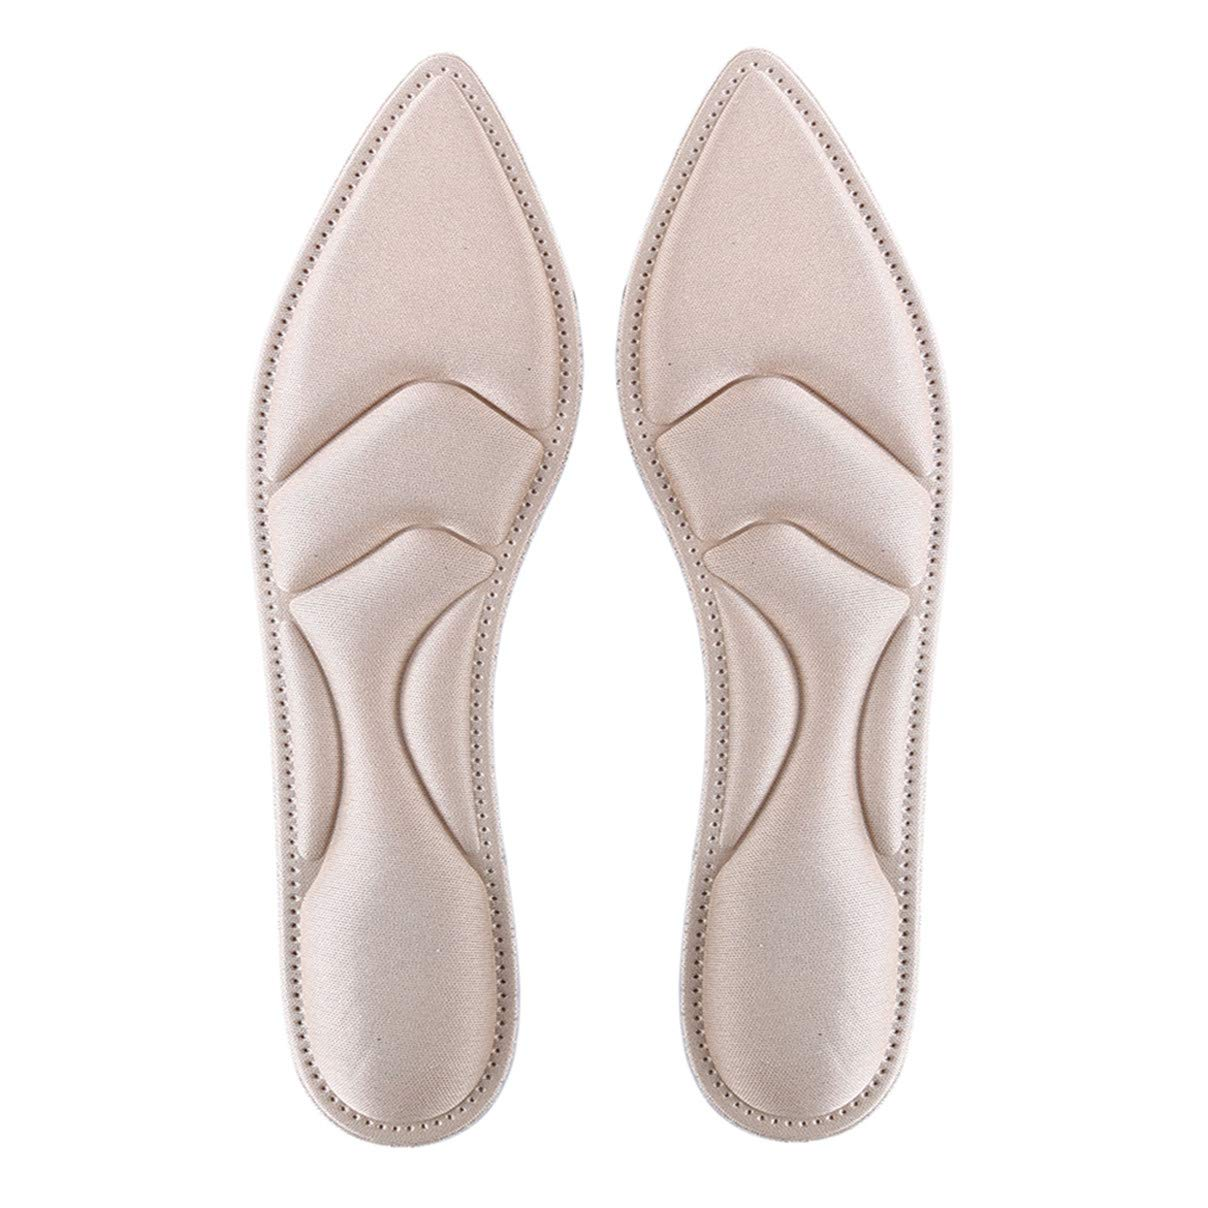 Essencedelight Shoe Insole Comfort Thin Lightweight Cushioning Comfortable Inserts Improve Shoes Comfort Walking High Heel Shoe Pads for Women